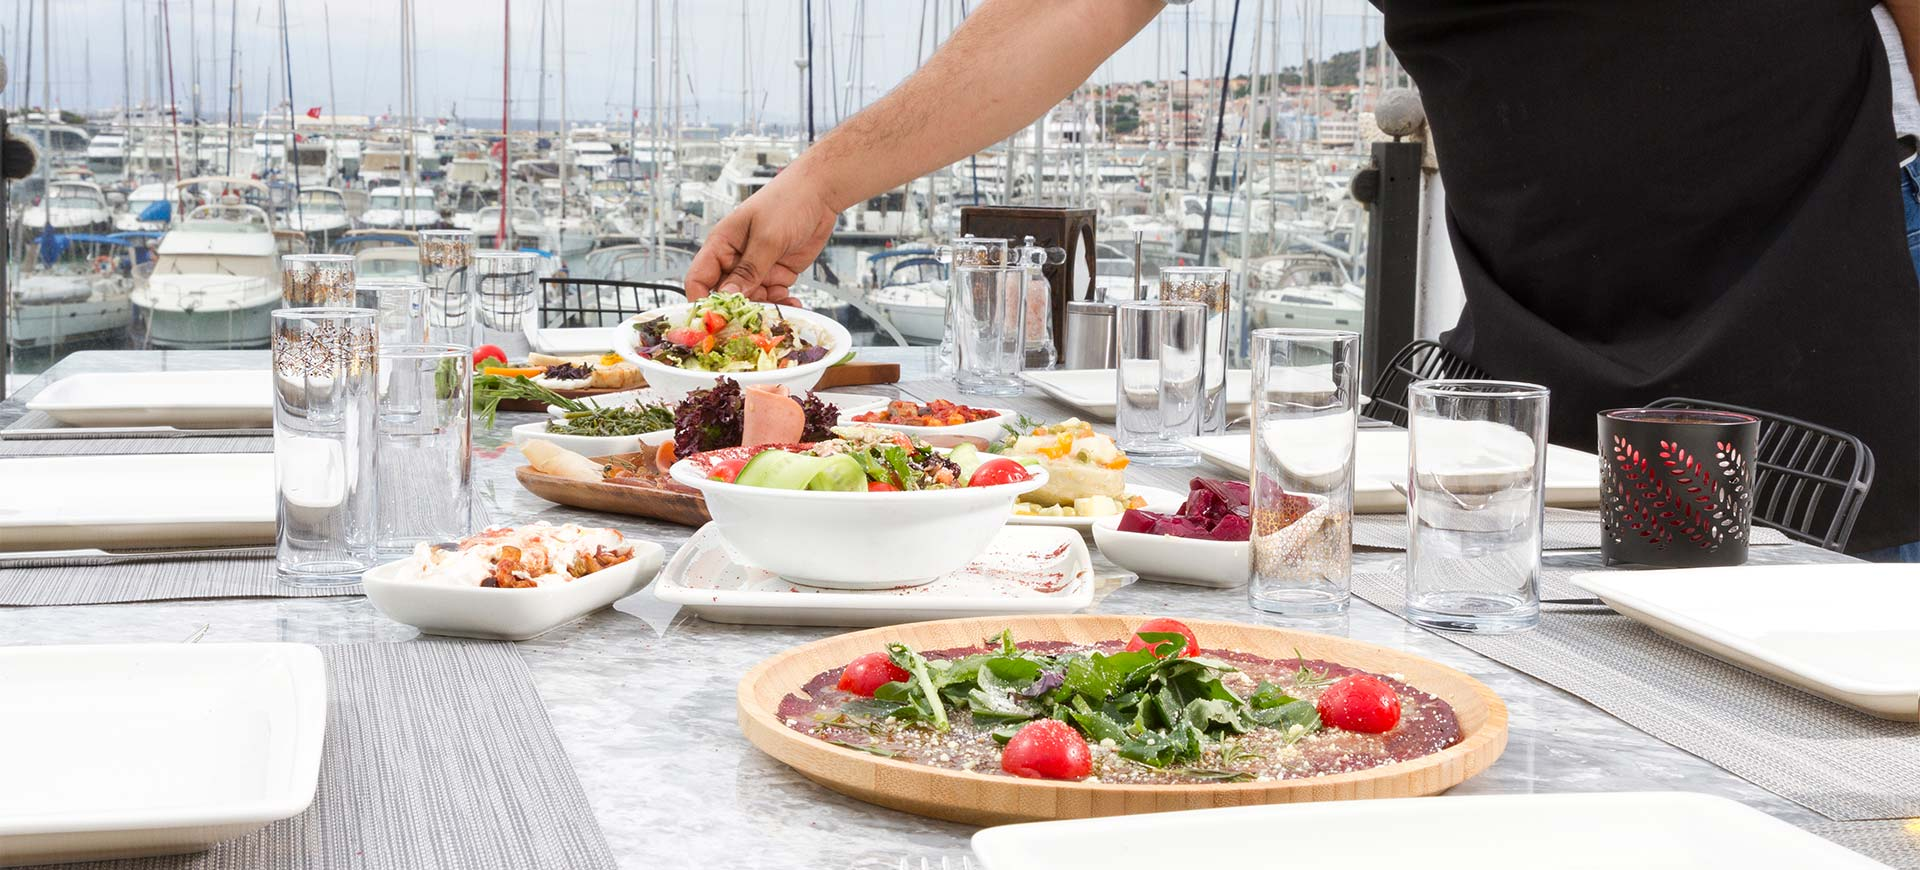 Top 10 restaurants in Central Dalmatia by our own choice